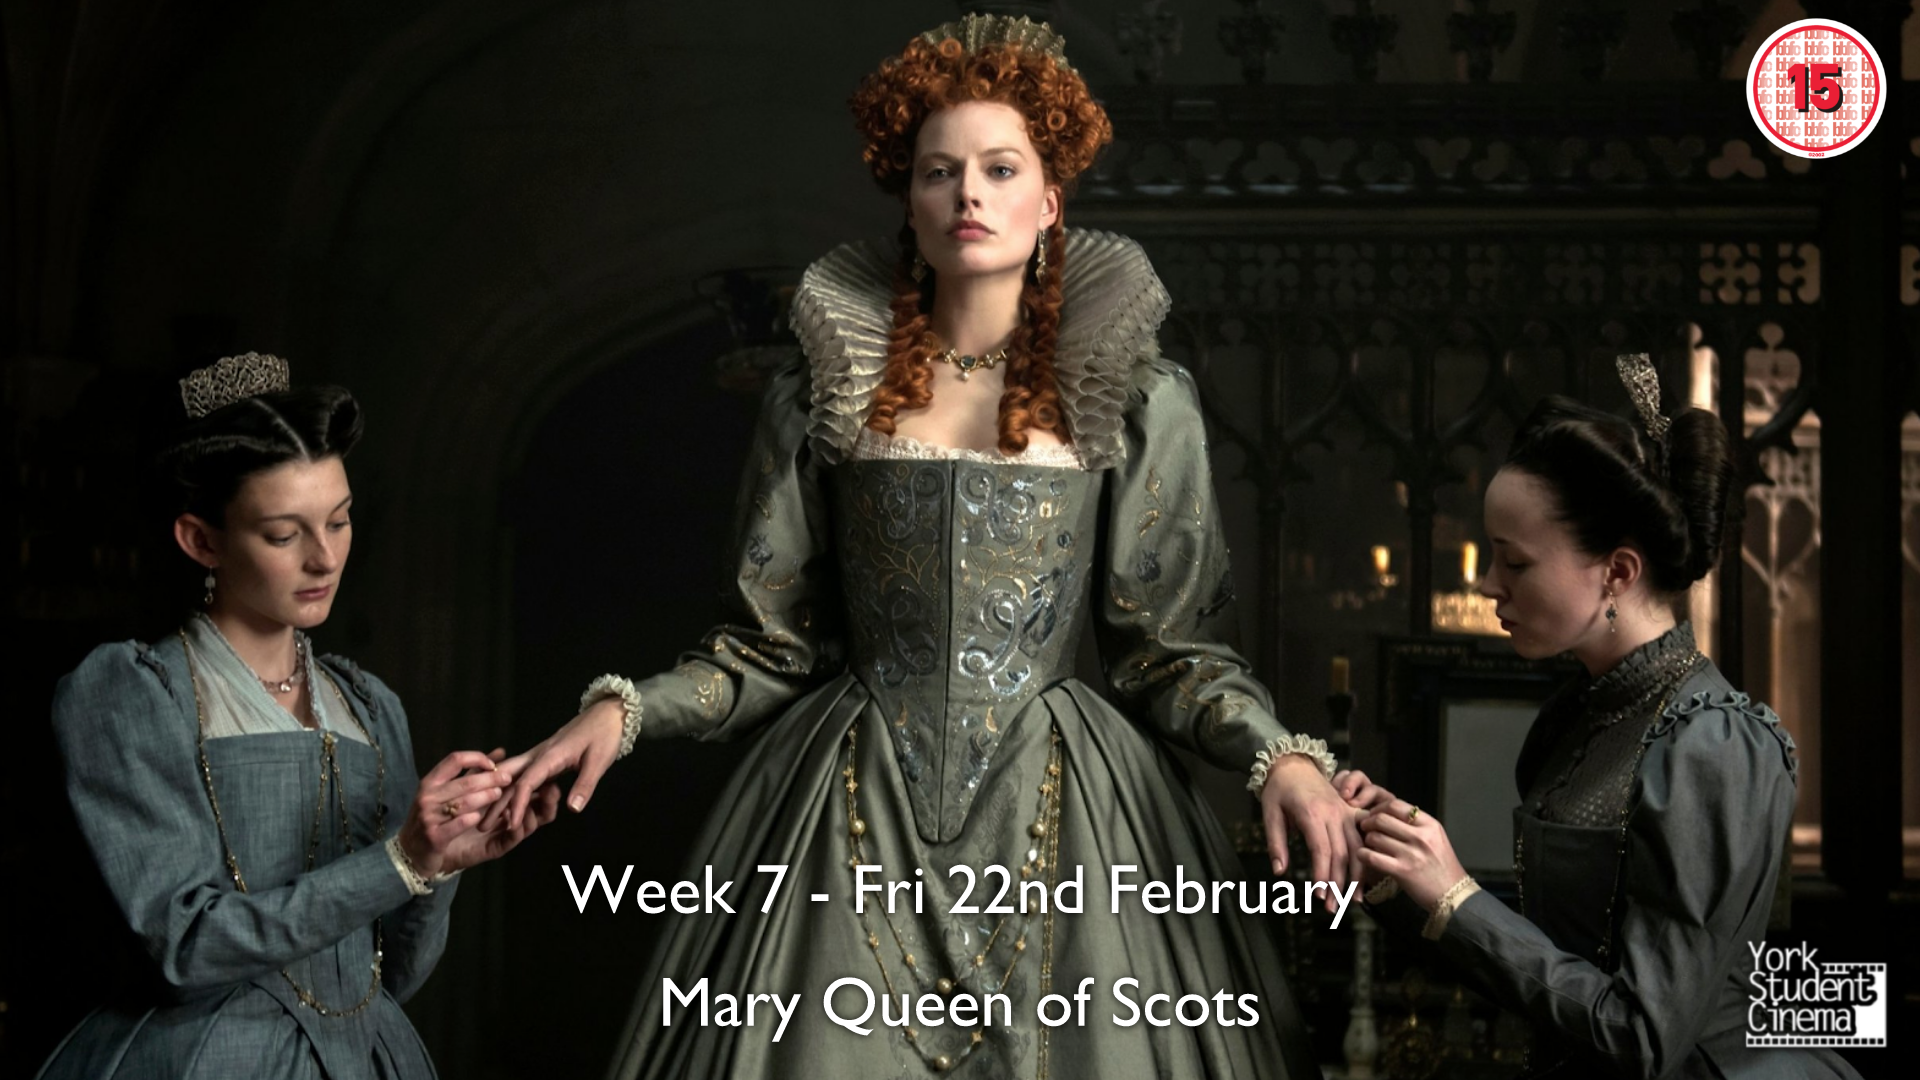 YSC Screening of Mary Queen of Scots